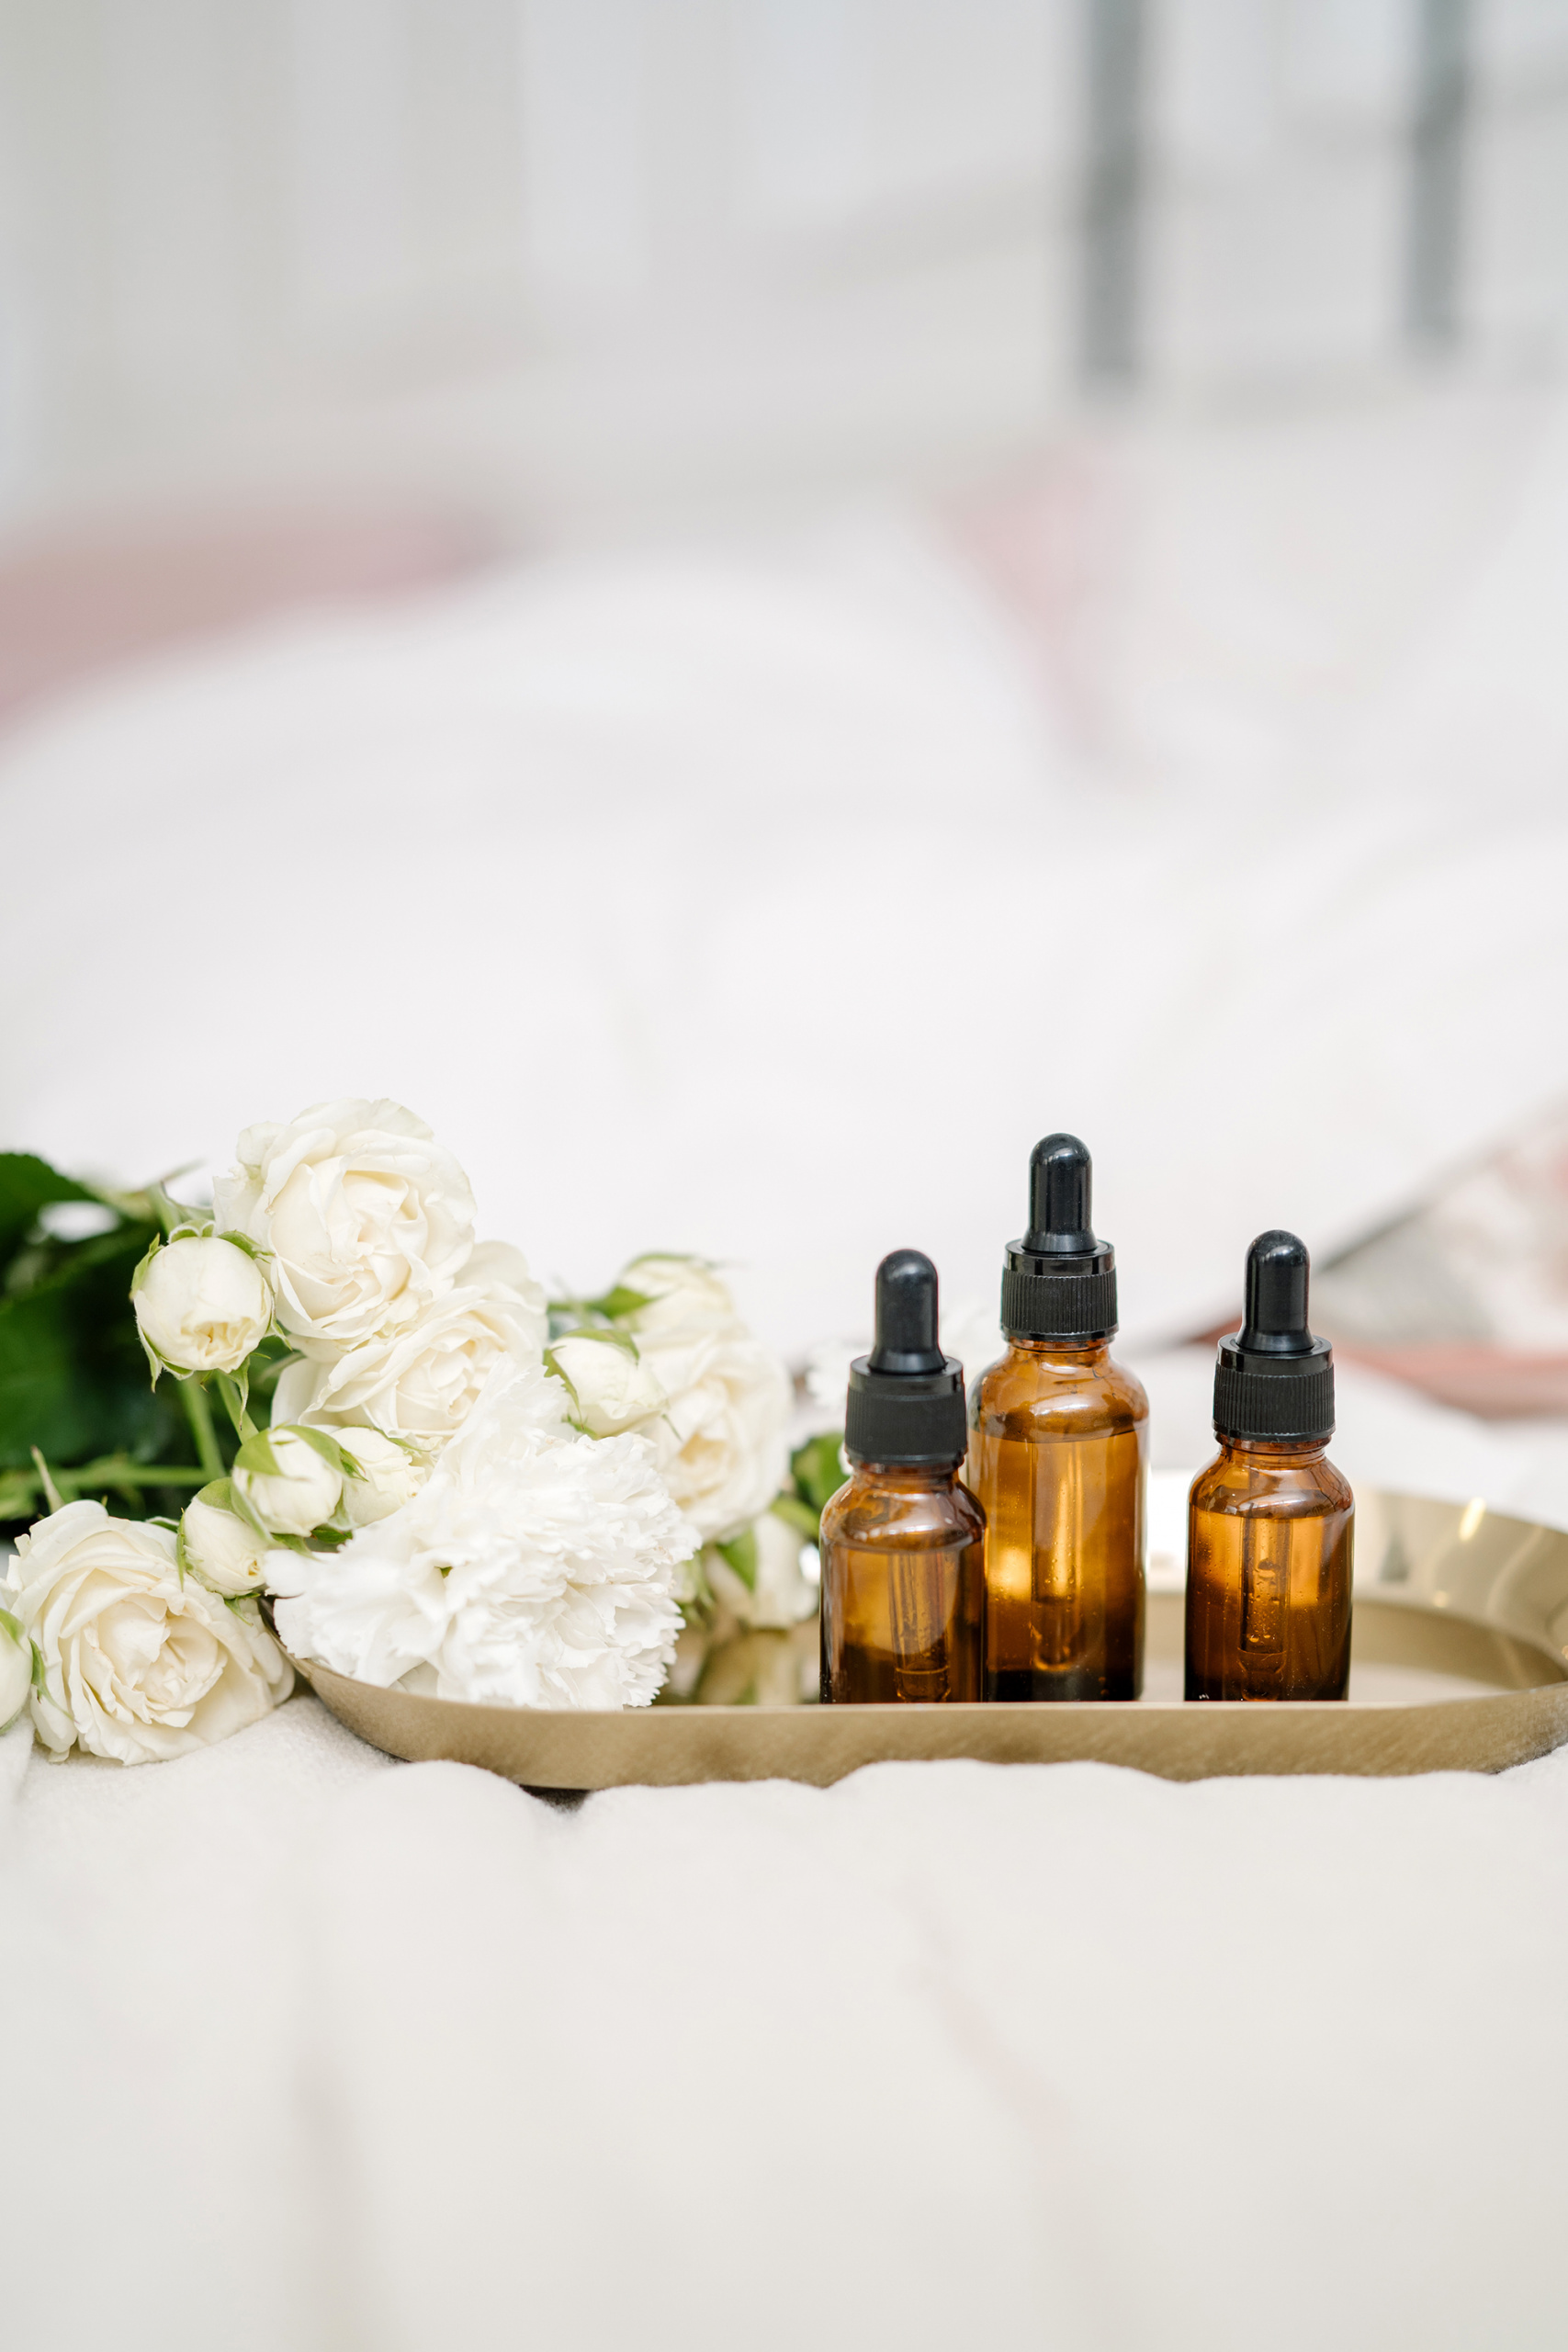 vitamin c serums, beauty tray with white flowers and serum bottles